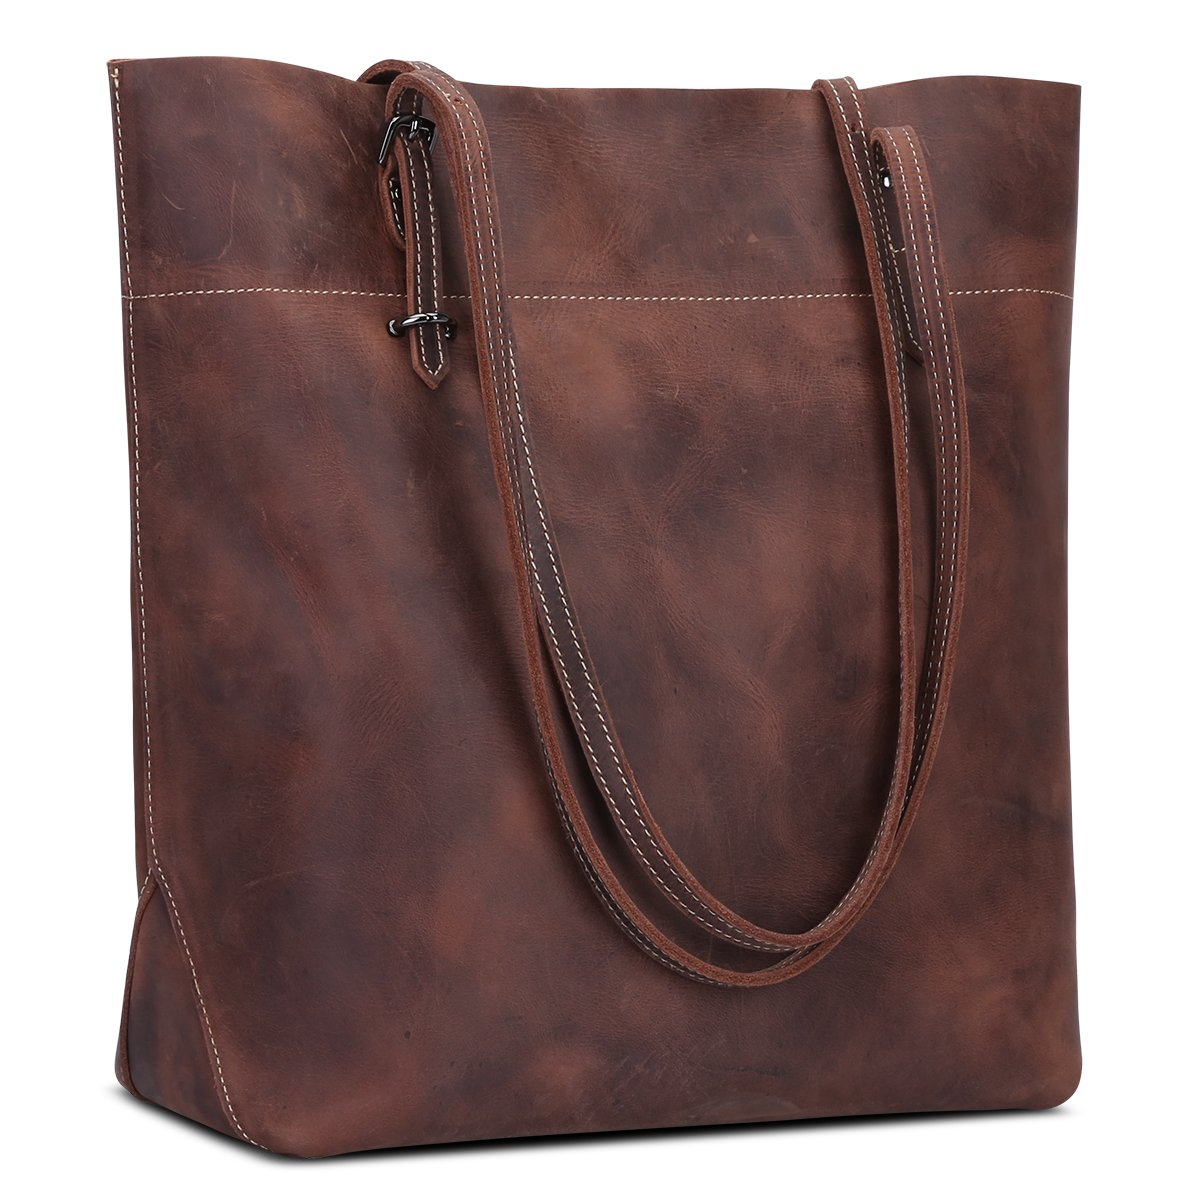 S-ZONE Women's Vintage Crazy Horse Leather Work Tote Shoulder Bag Large Capacity